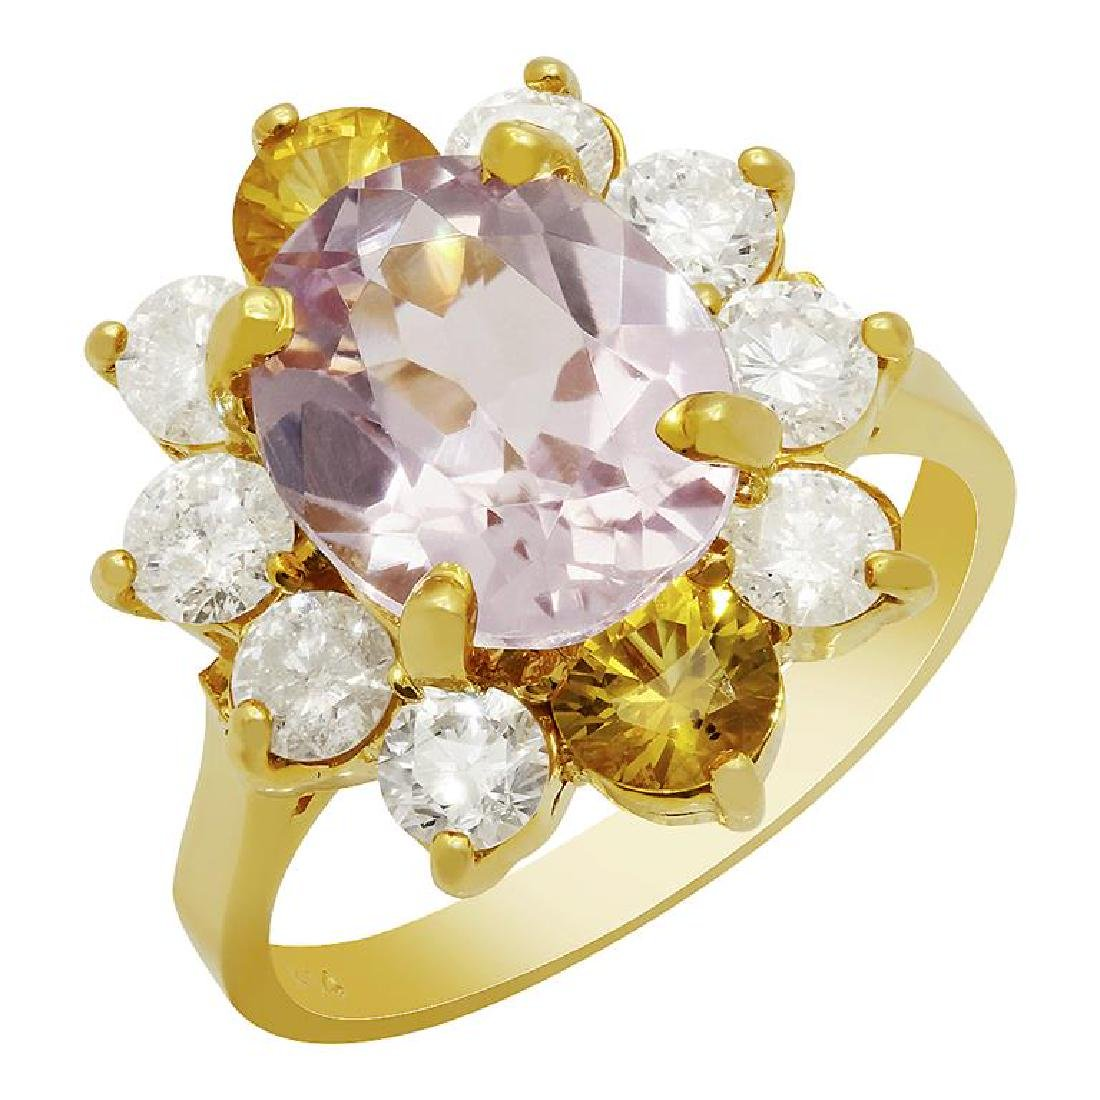 14k Yellow Gold 3.59ct Kunzite 0.98ct Yellow Sapphire